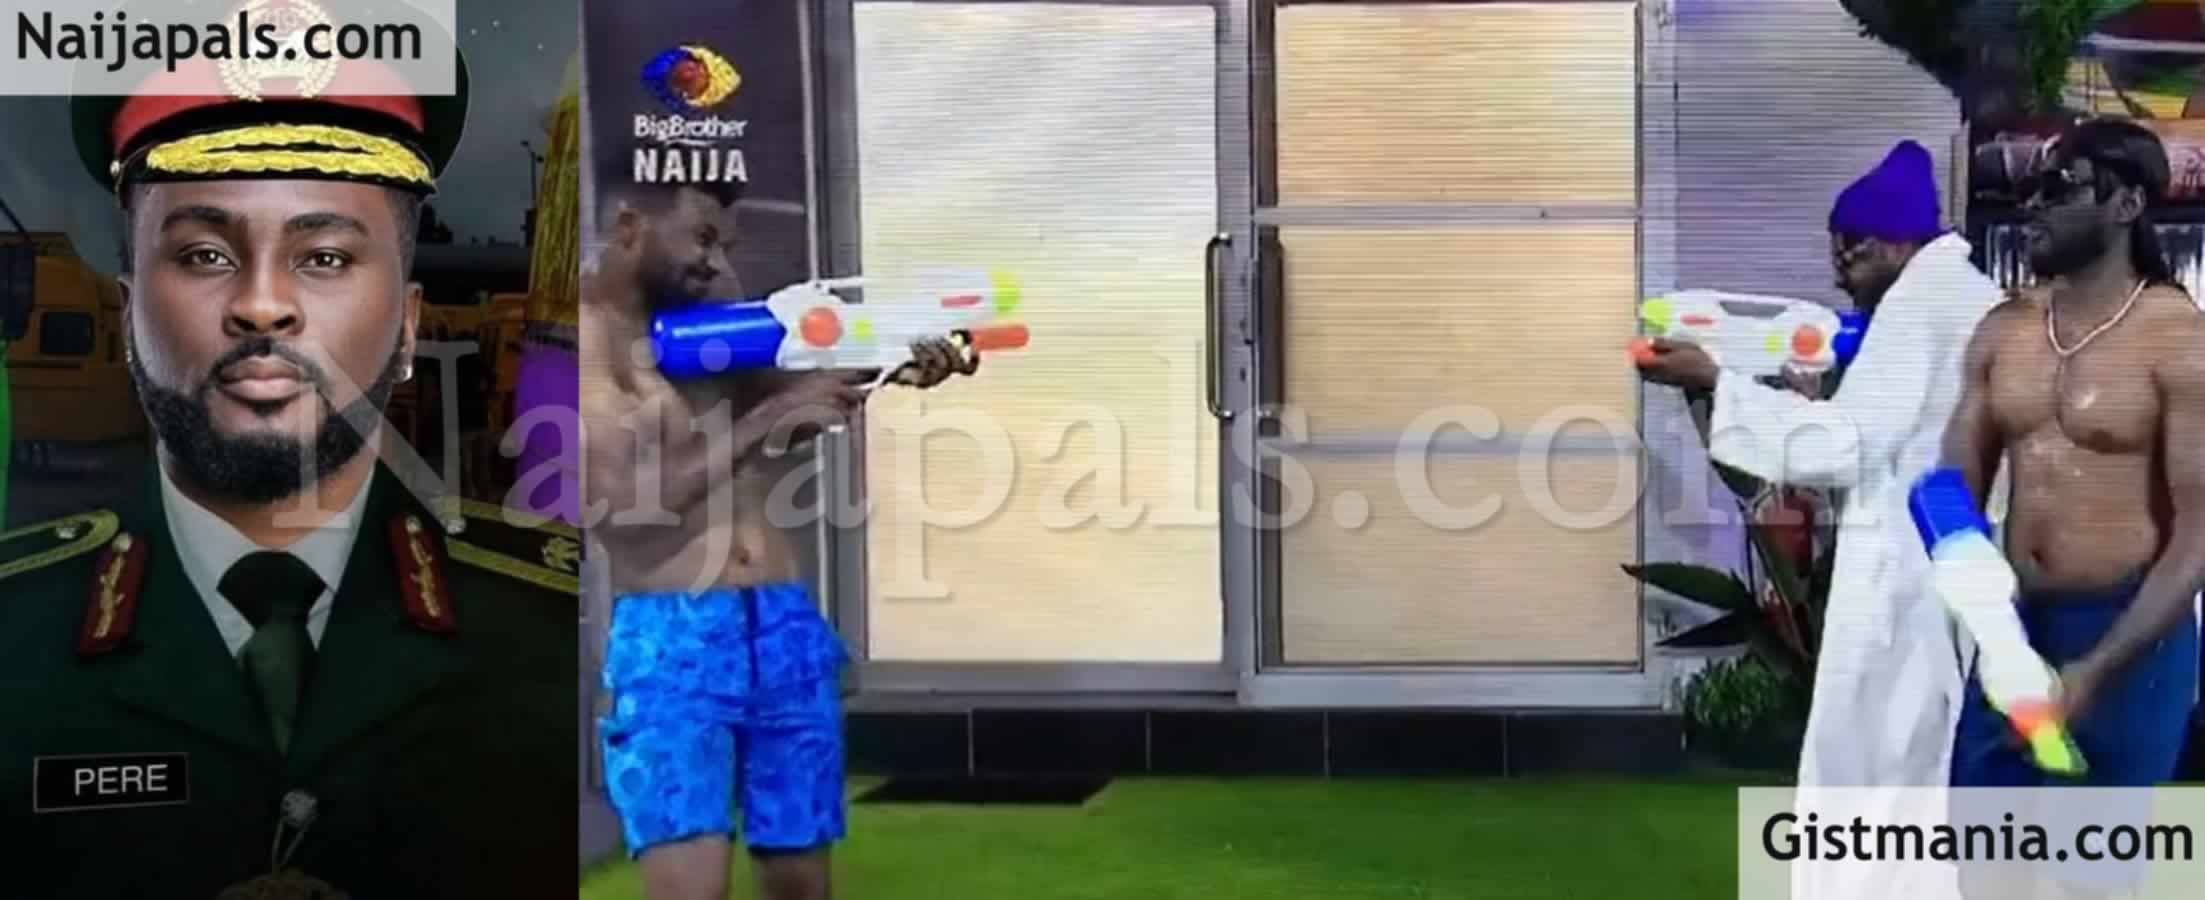 <img alt='.' class='lazyload' data-src='https://img.gistmania.com/emot/comment.gif' /><img alt='.' class='lazyload' data-src='https://img.gistmania.com/emot/video.gif' /> #BBNAIJA! <b>Fans React After Ex-Military Housemate, Pere Missed Military Action Of Shooting During Game</b> (Video)